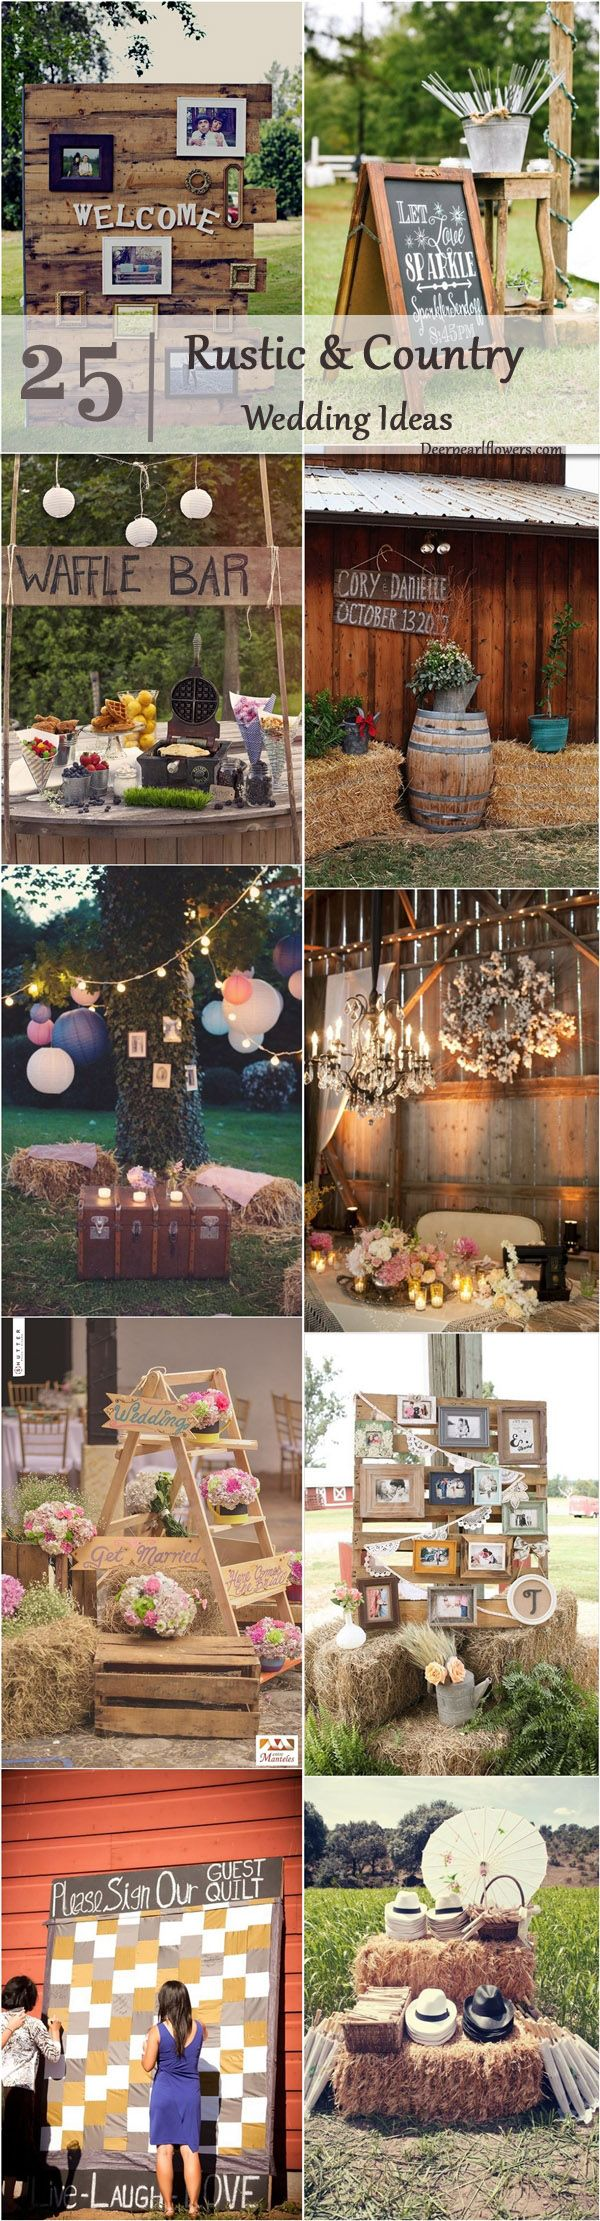 Wedding decorations country   Gorgeous Country Rustic Wedding Ideas for your Big Day  Rustic